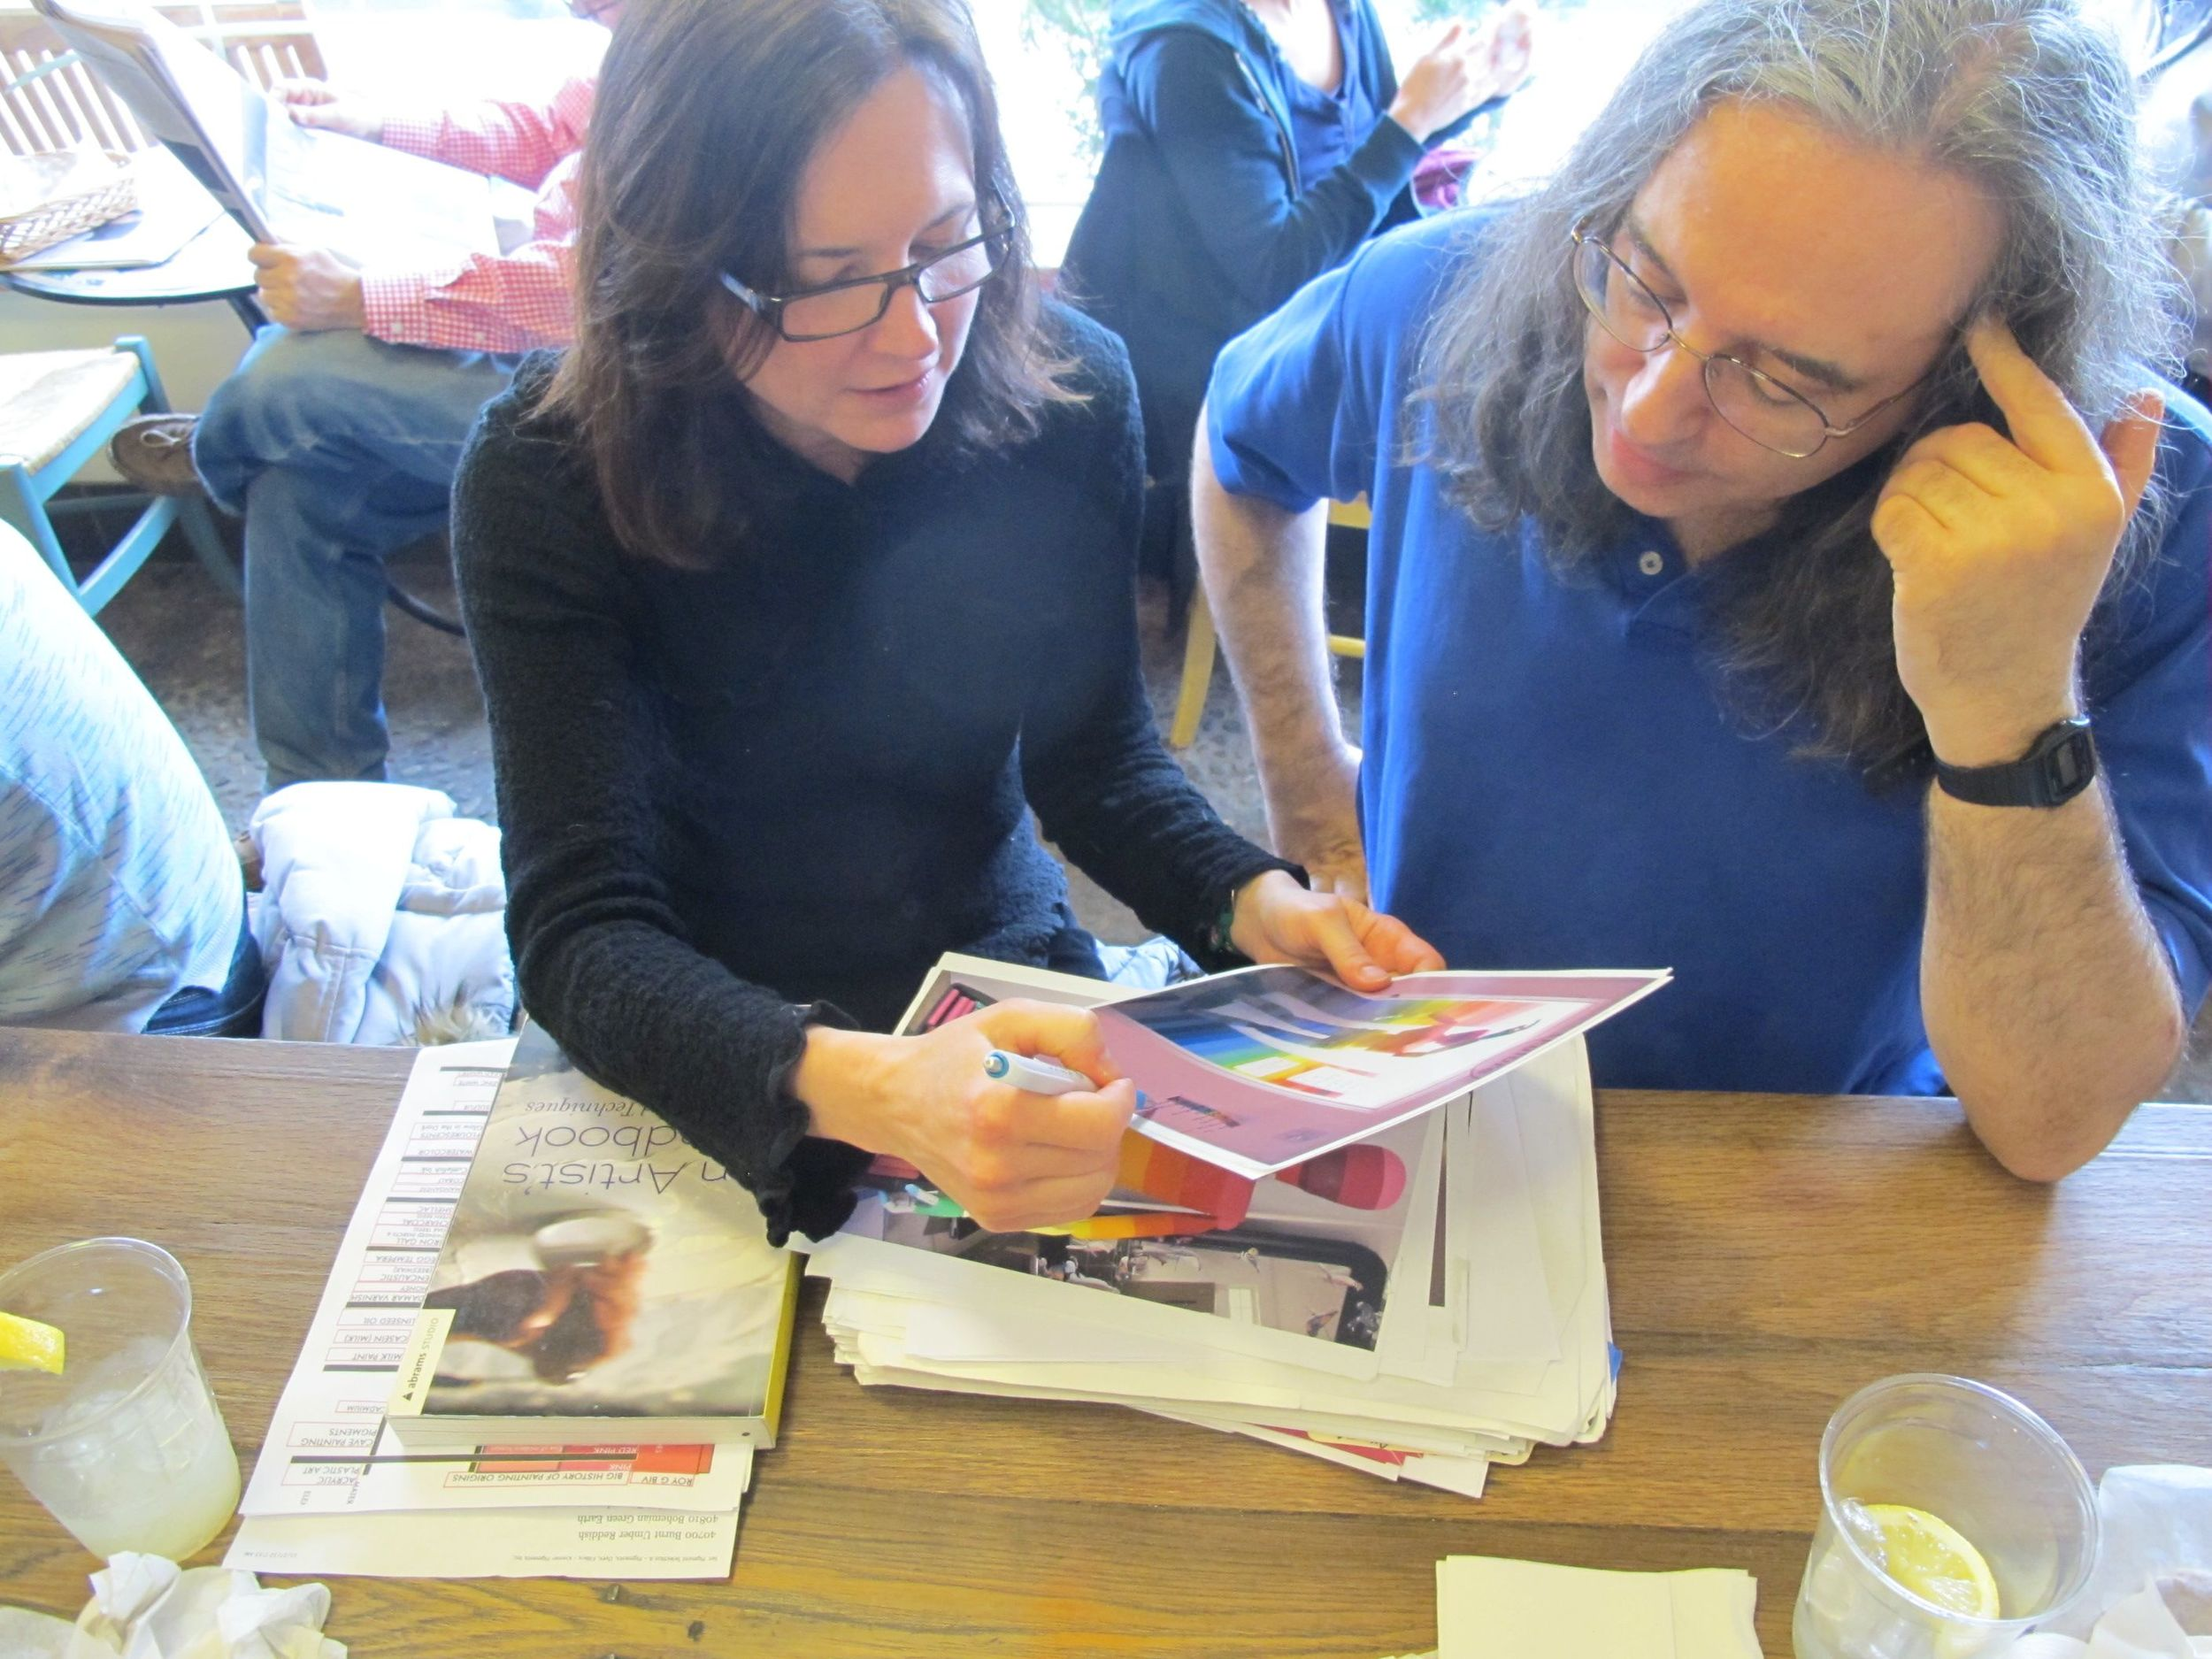 Pamelia asked for Jonathan's ideas on some of The Naturalist's Notebook's projects and designs over lunch at the Hi-Rise Bread Company cafe near his office.